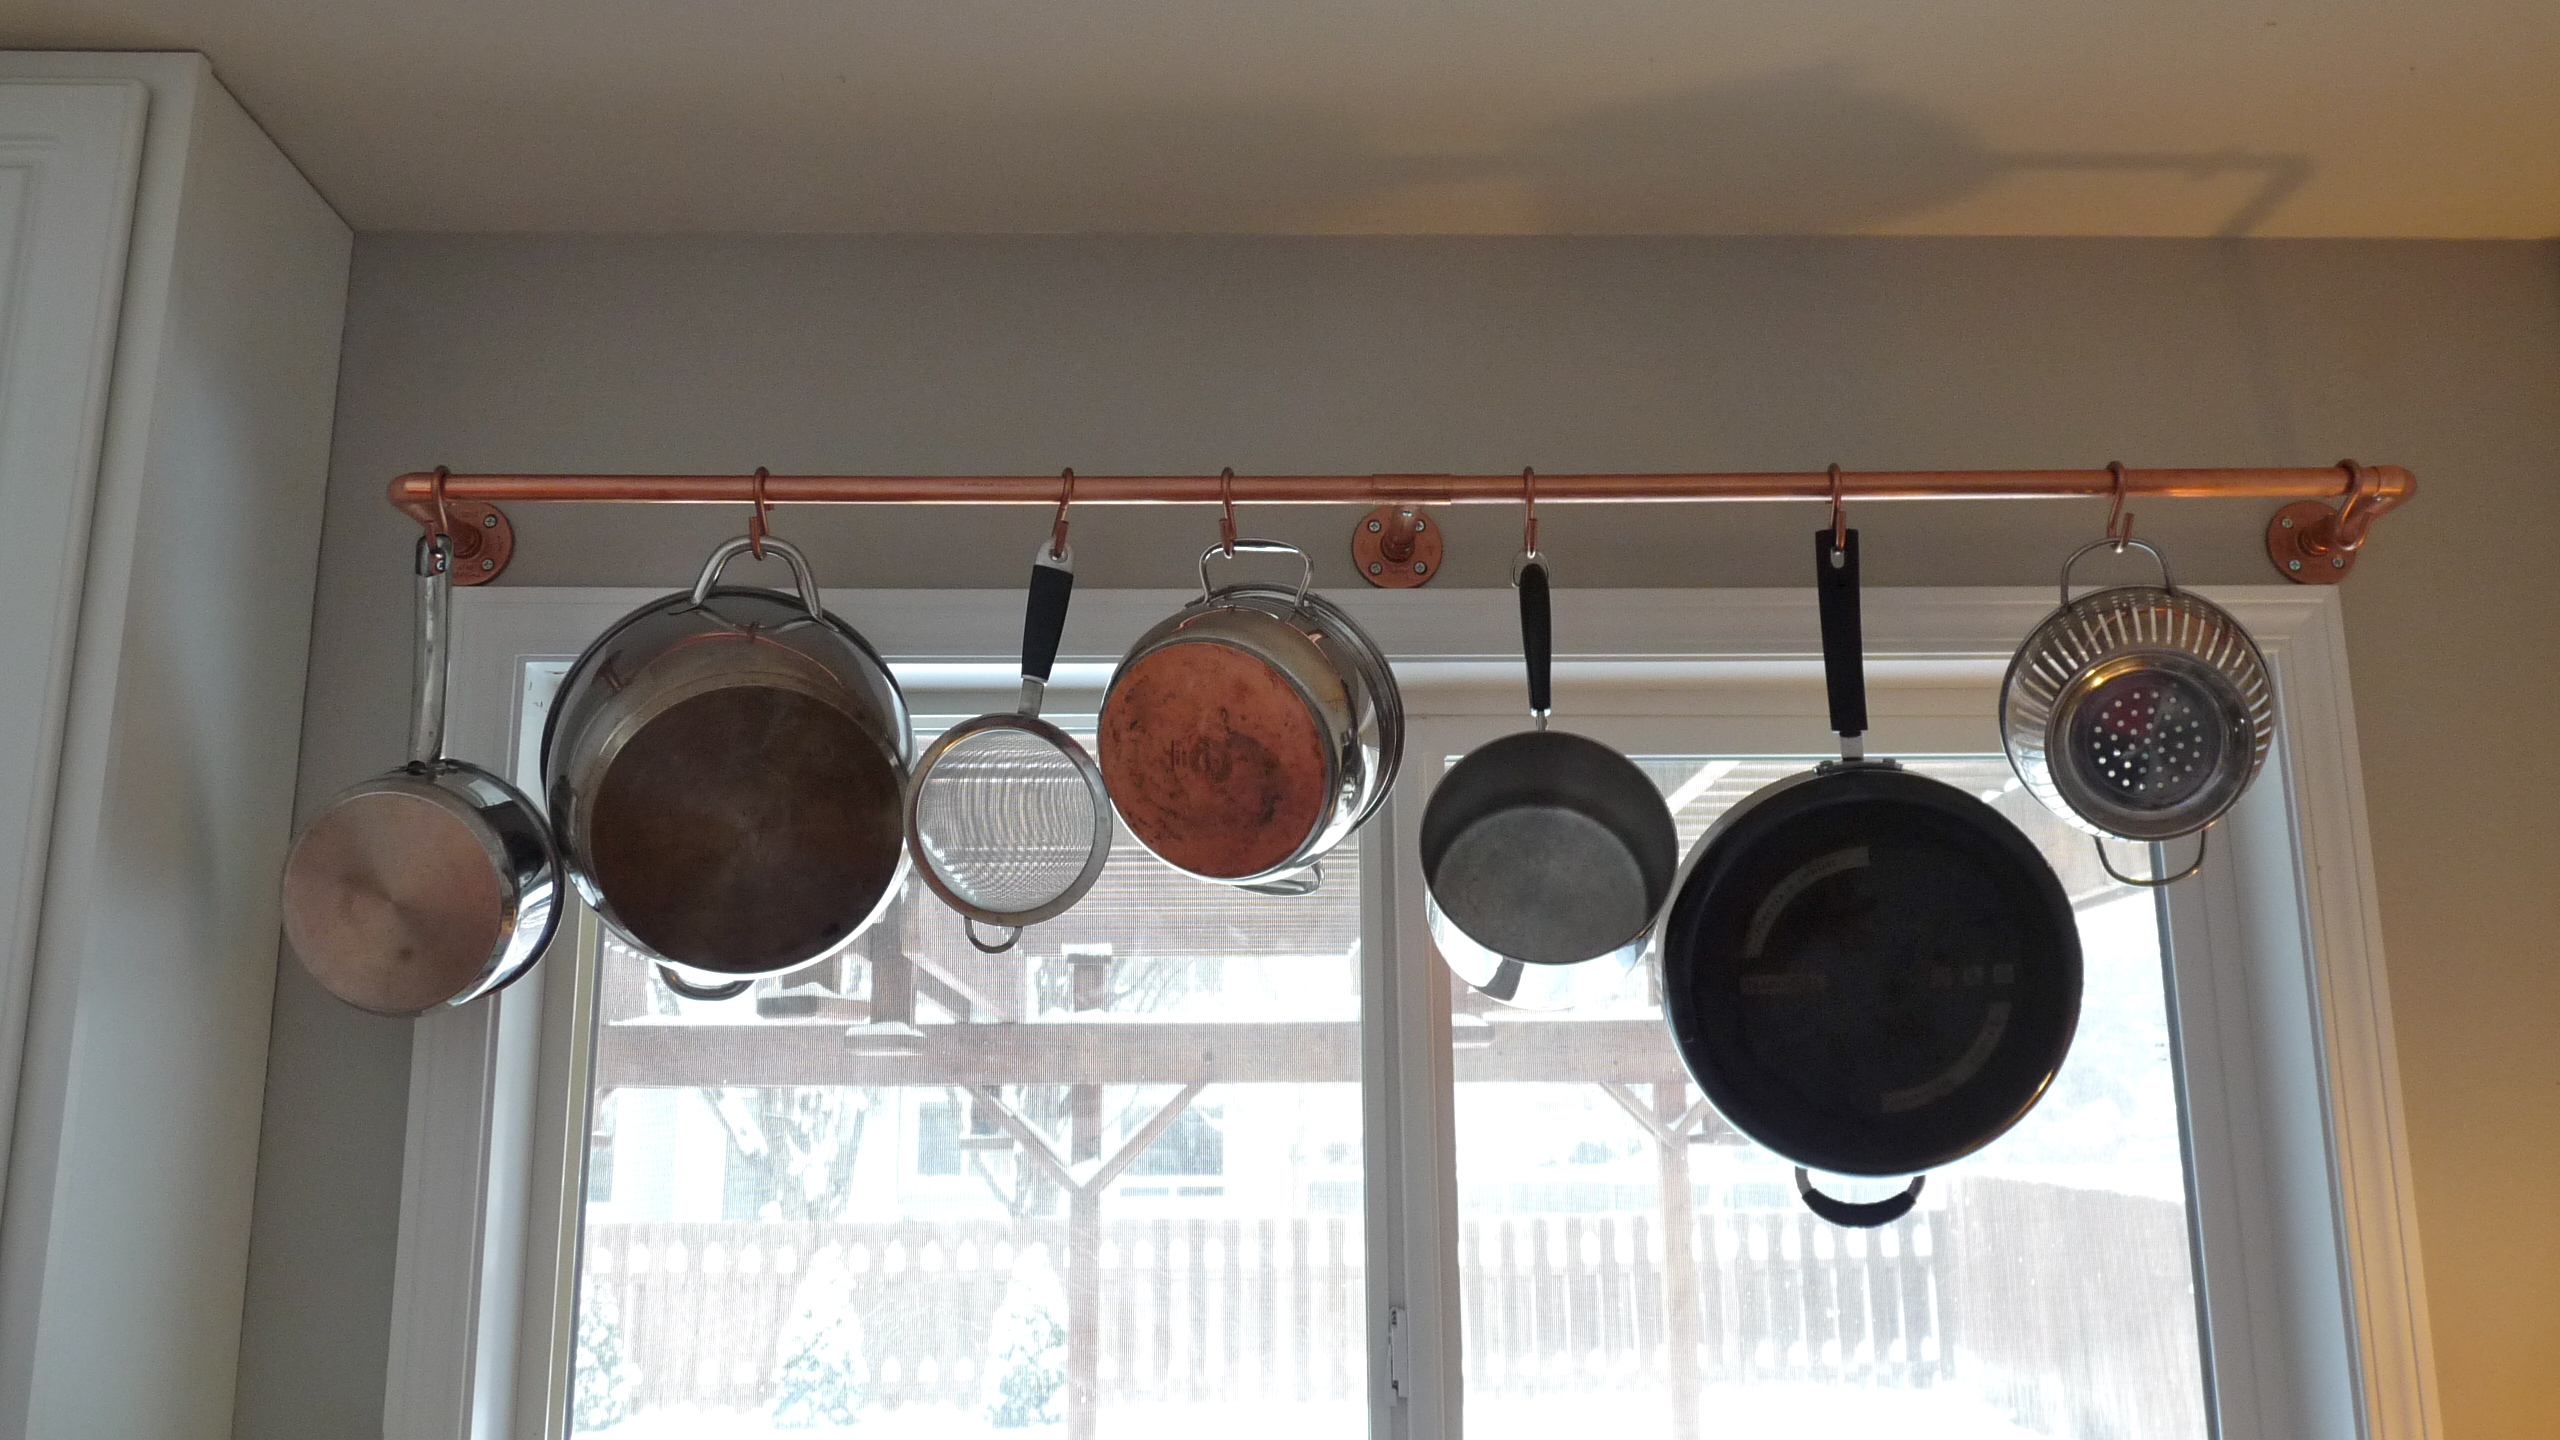 pots kitchens with favorite along kitchen wall ikea mounted hilarious racks enclume in lighted wells rack as for plus hooks zn pan dutch pans sliding also canning c lummy s pot